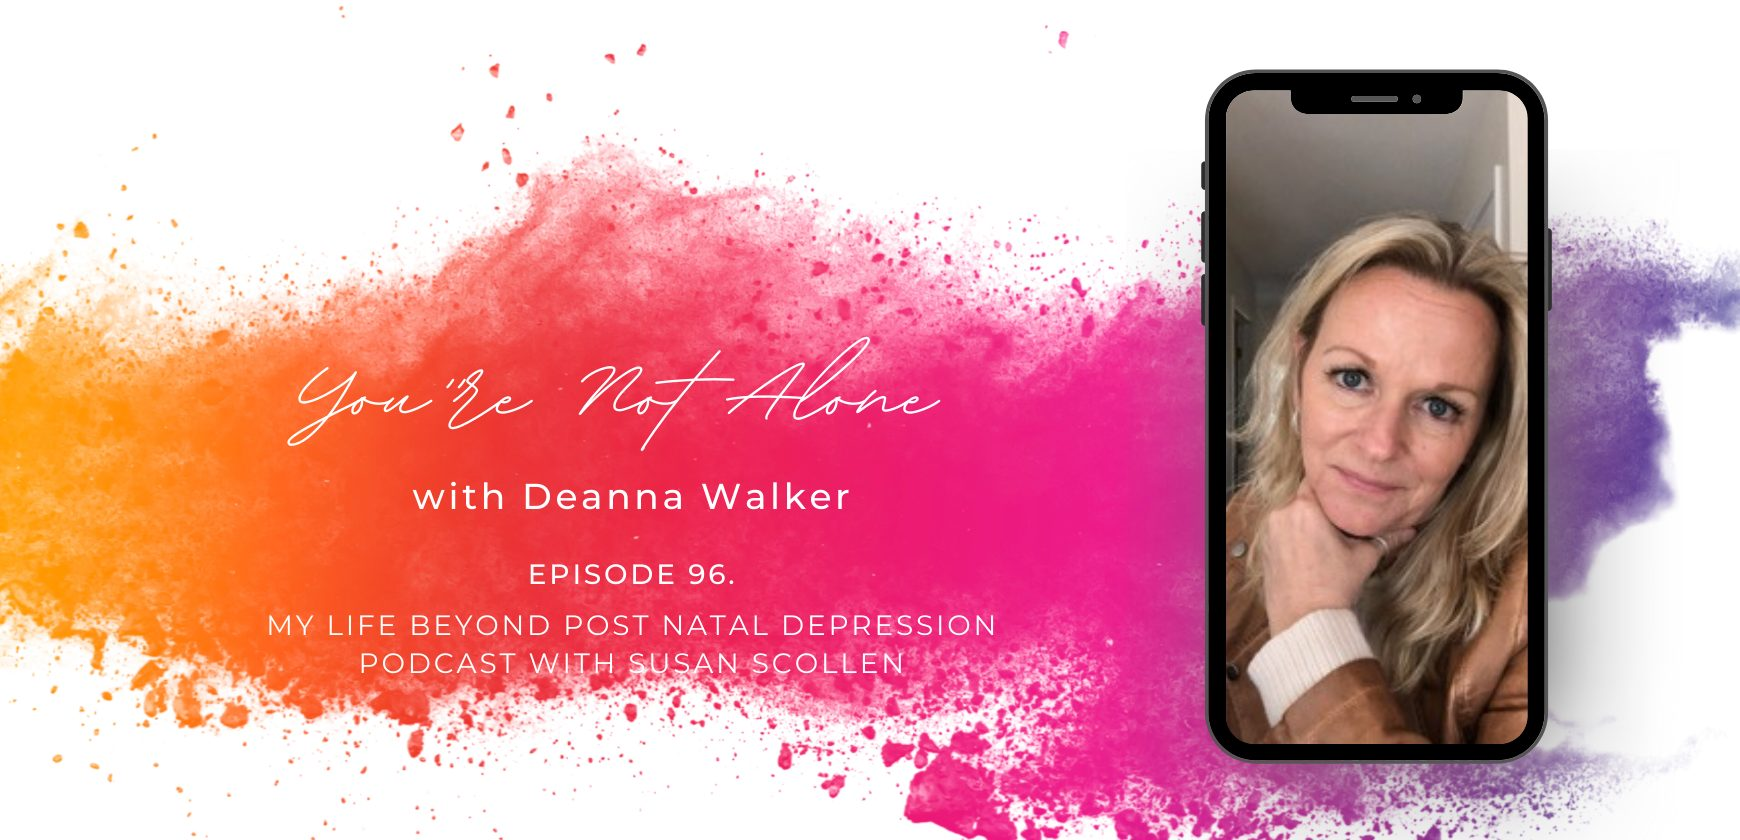 You're not alone with Deanna Walker